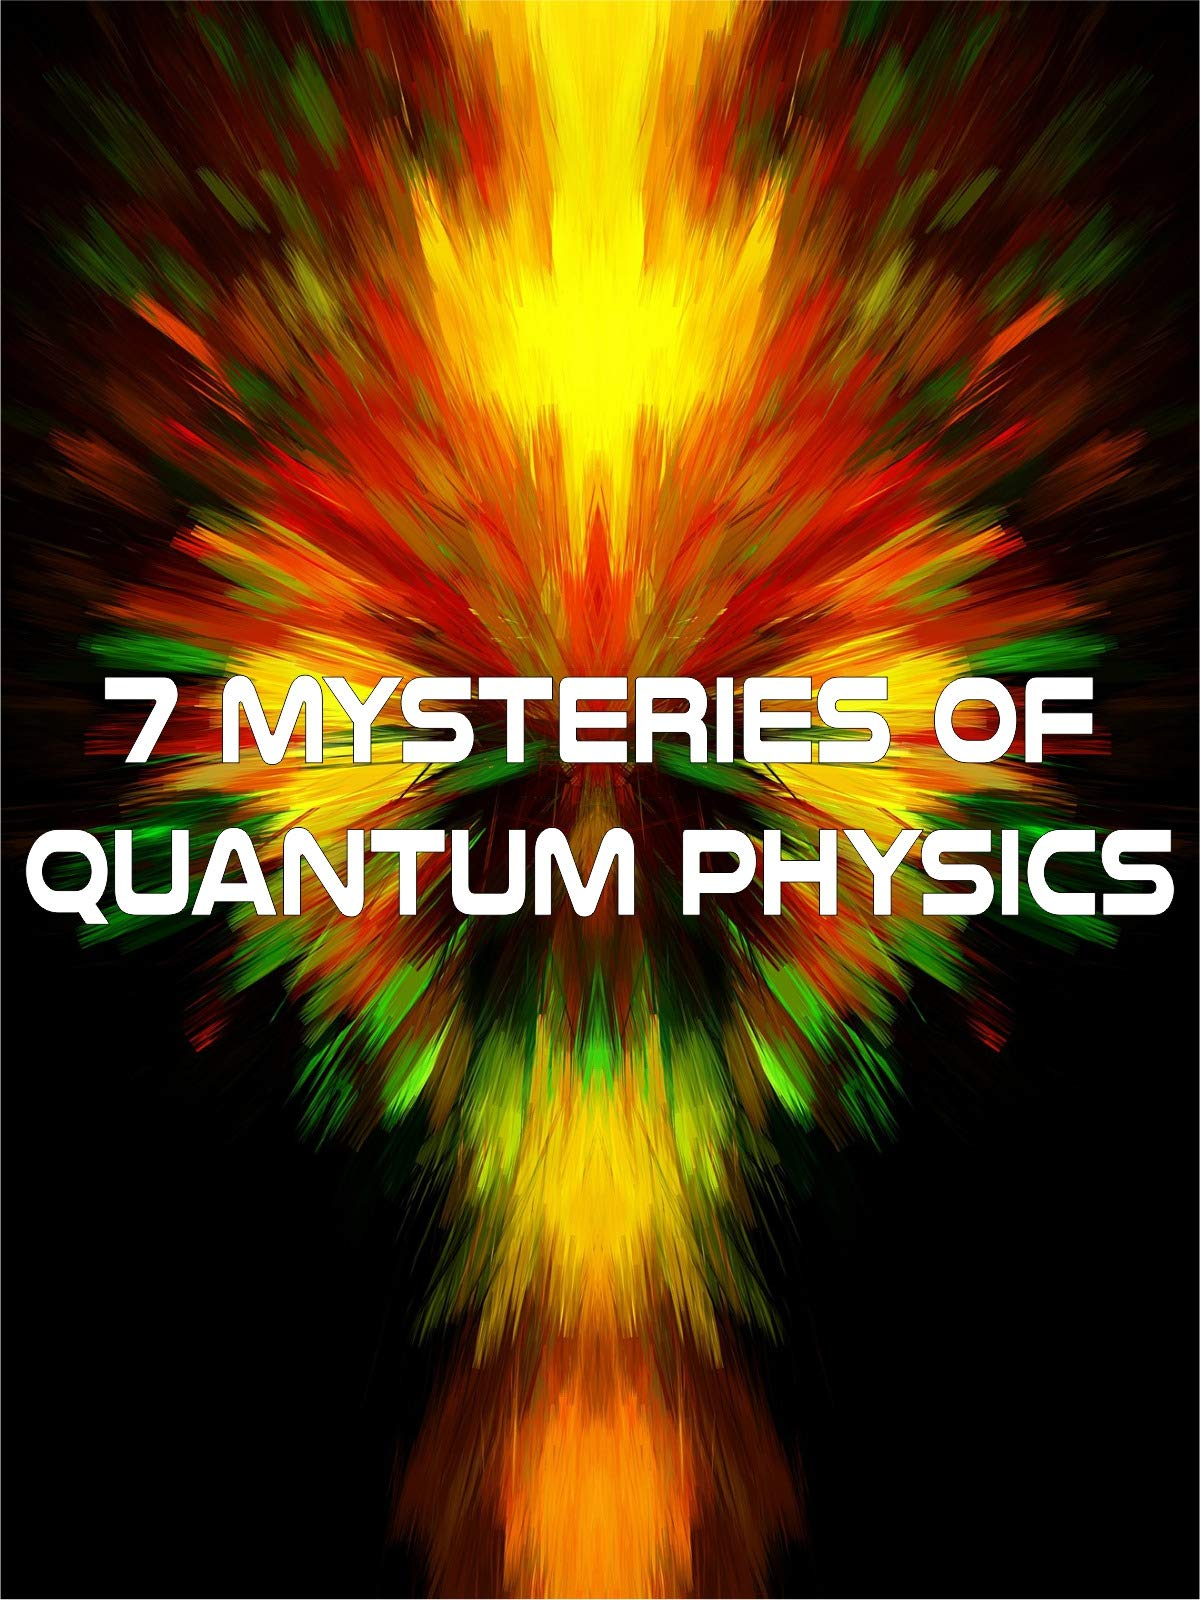 7 Mysteries of Quantum Physics